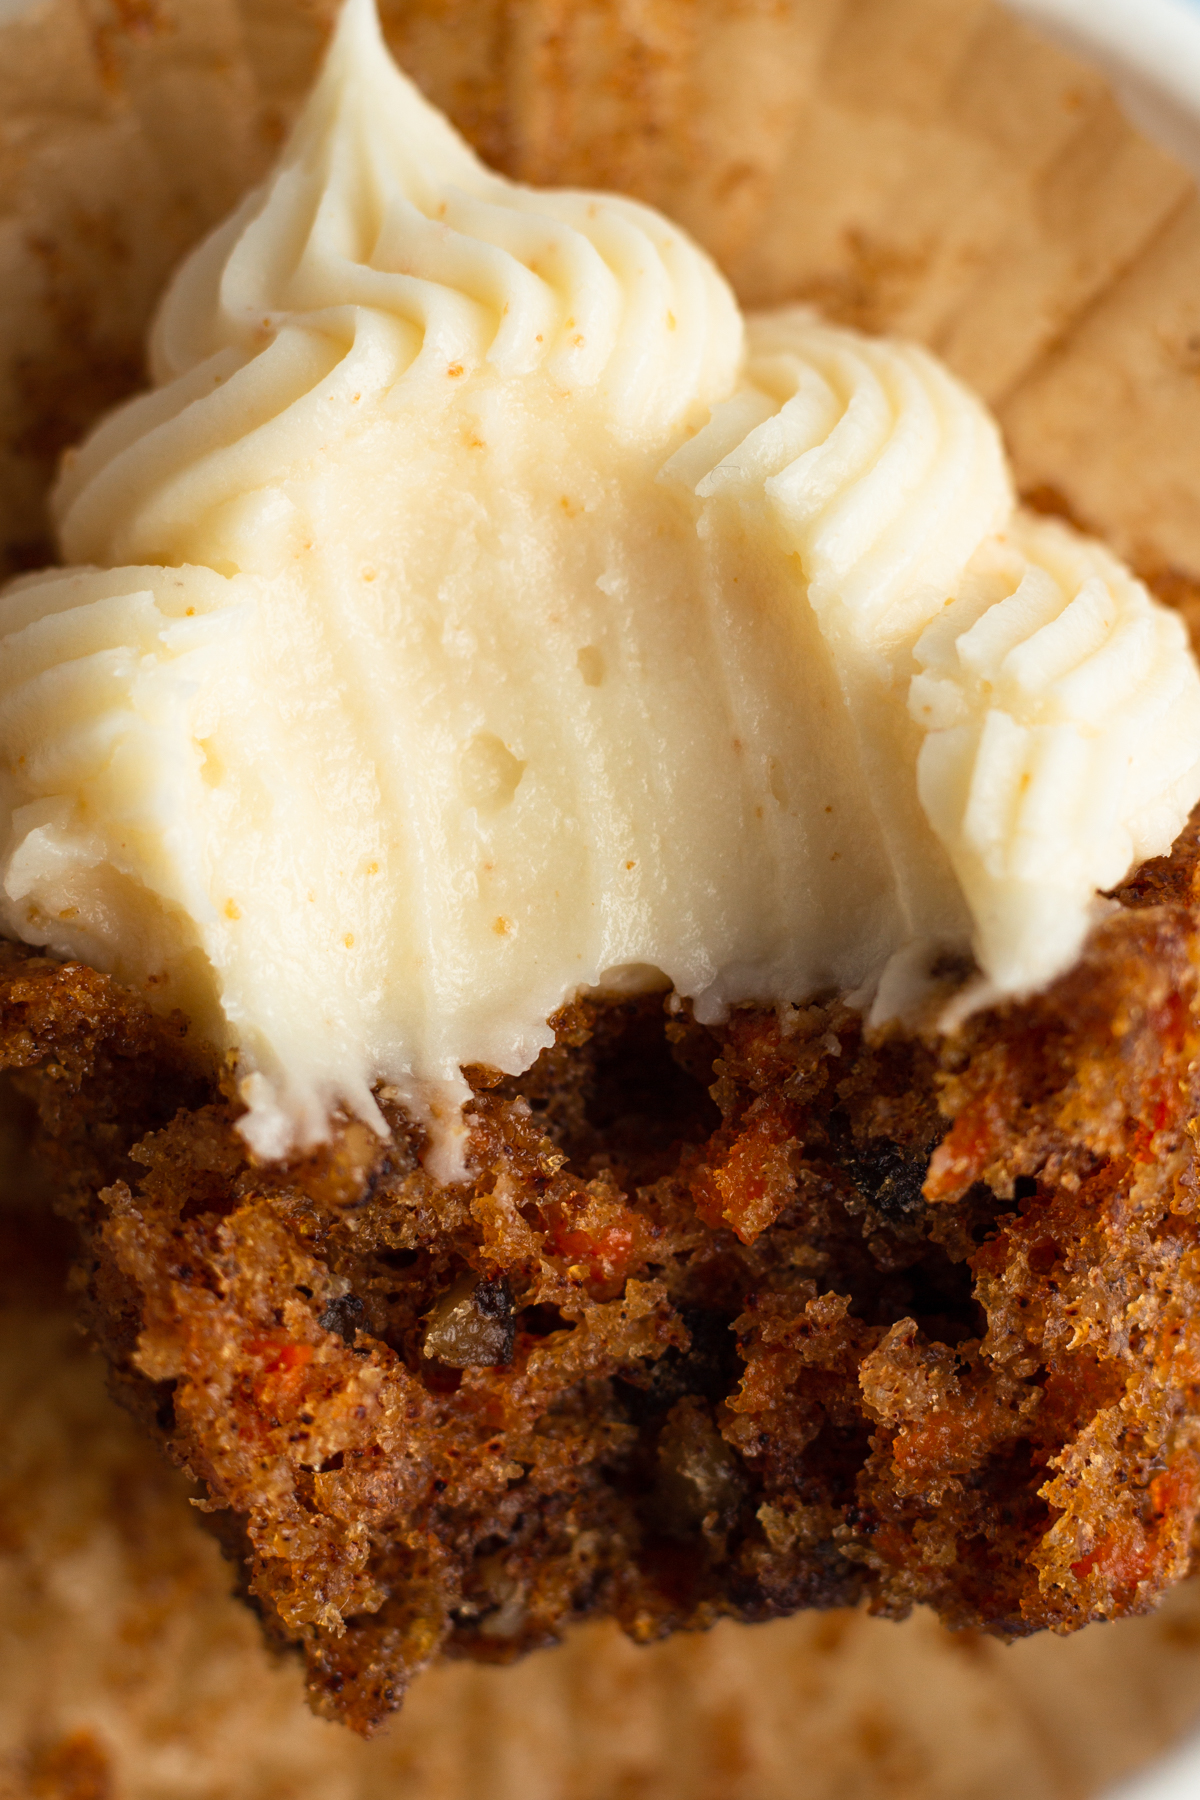 close up view of a carrot cake cupcake with a bite taken out